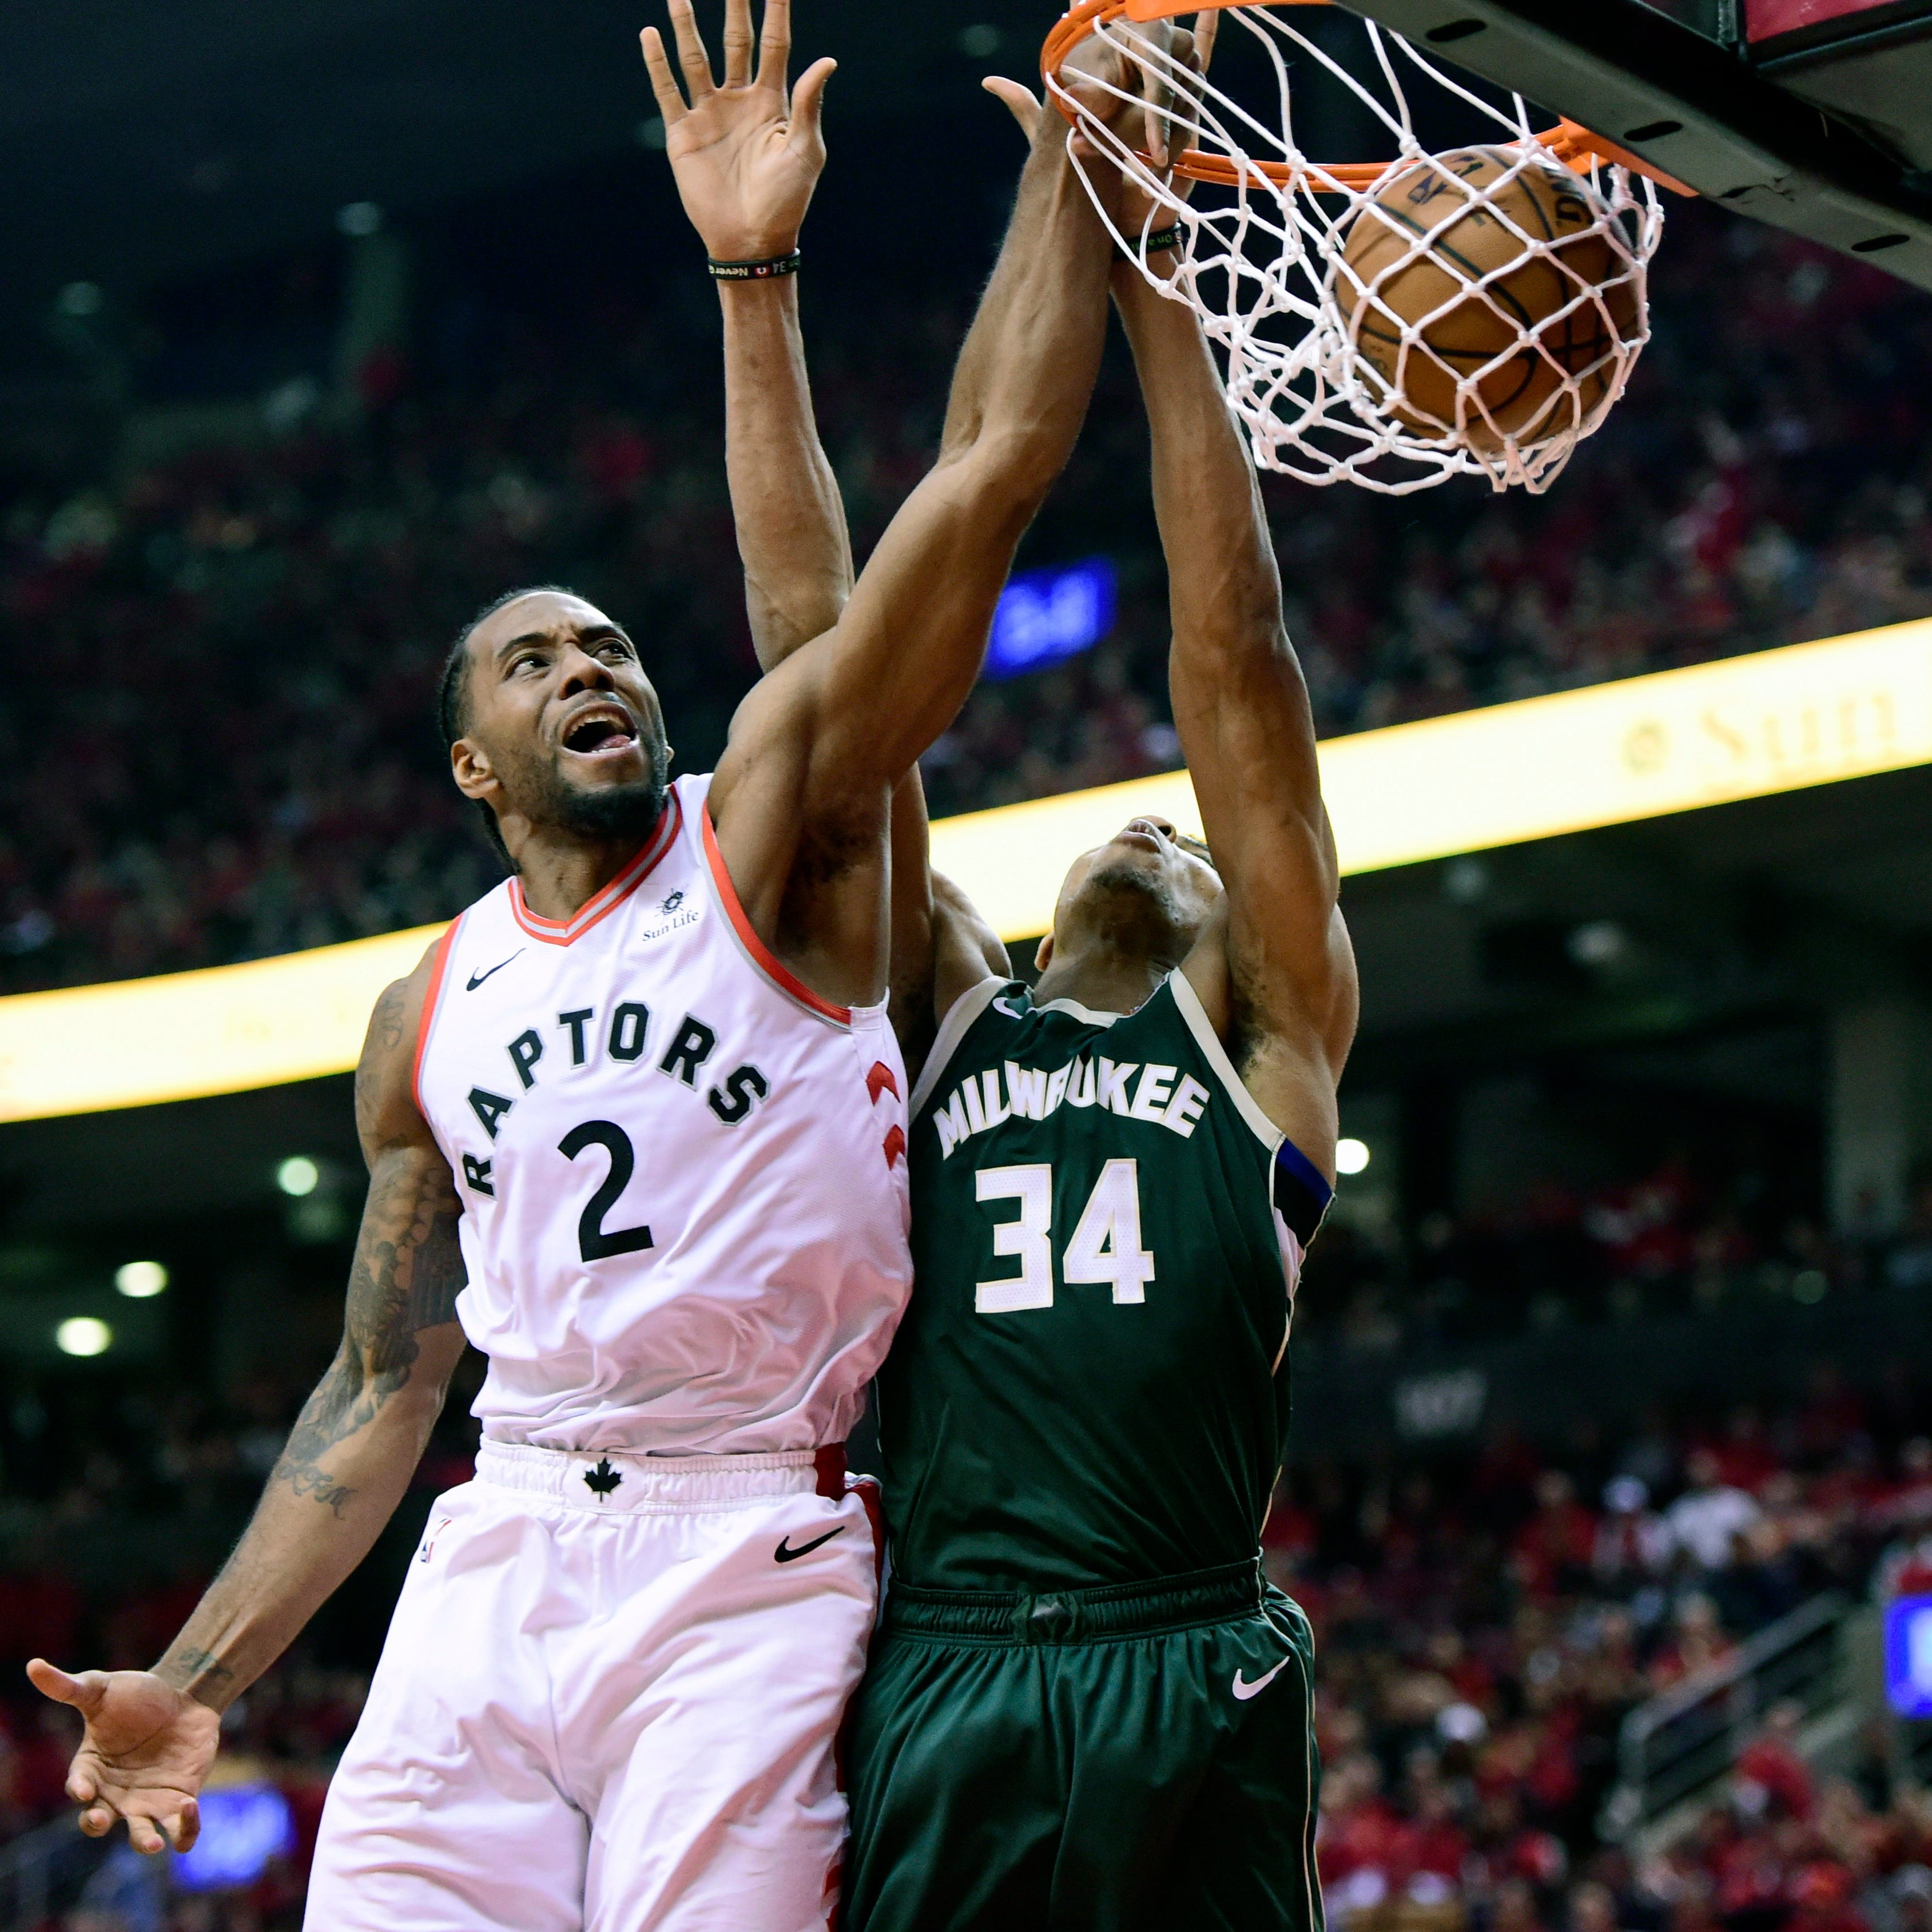 The Bucks have boasted a strong defense all season, but Game 4 featured one of their worst performances